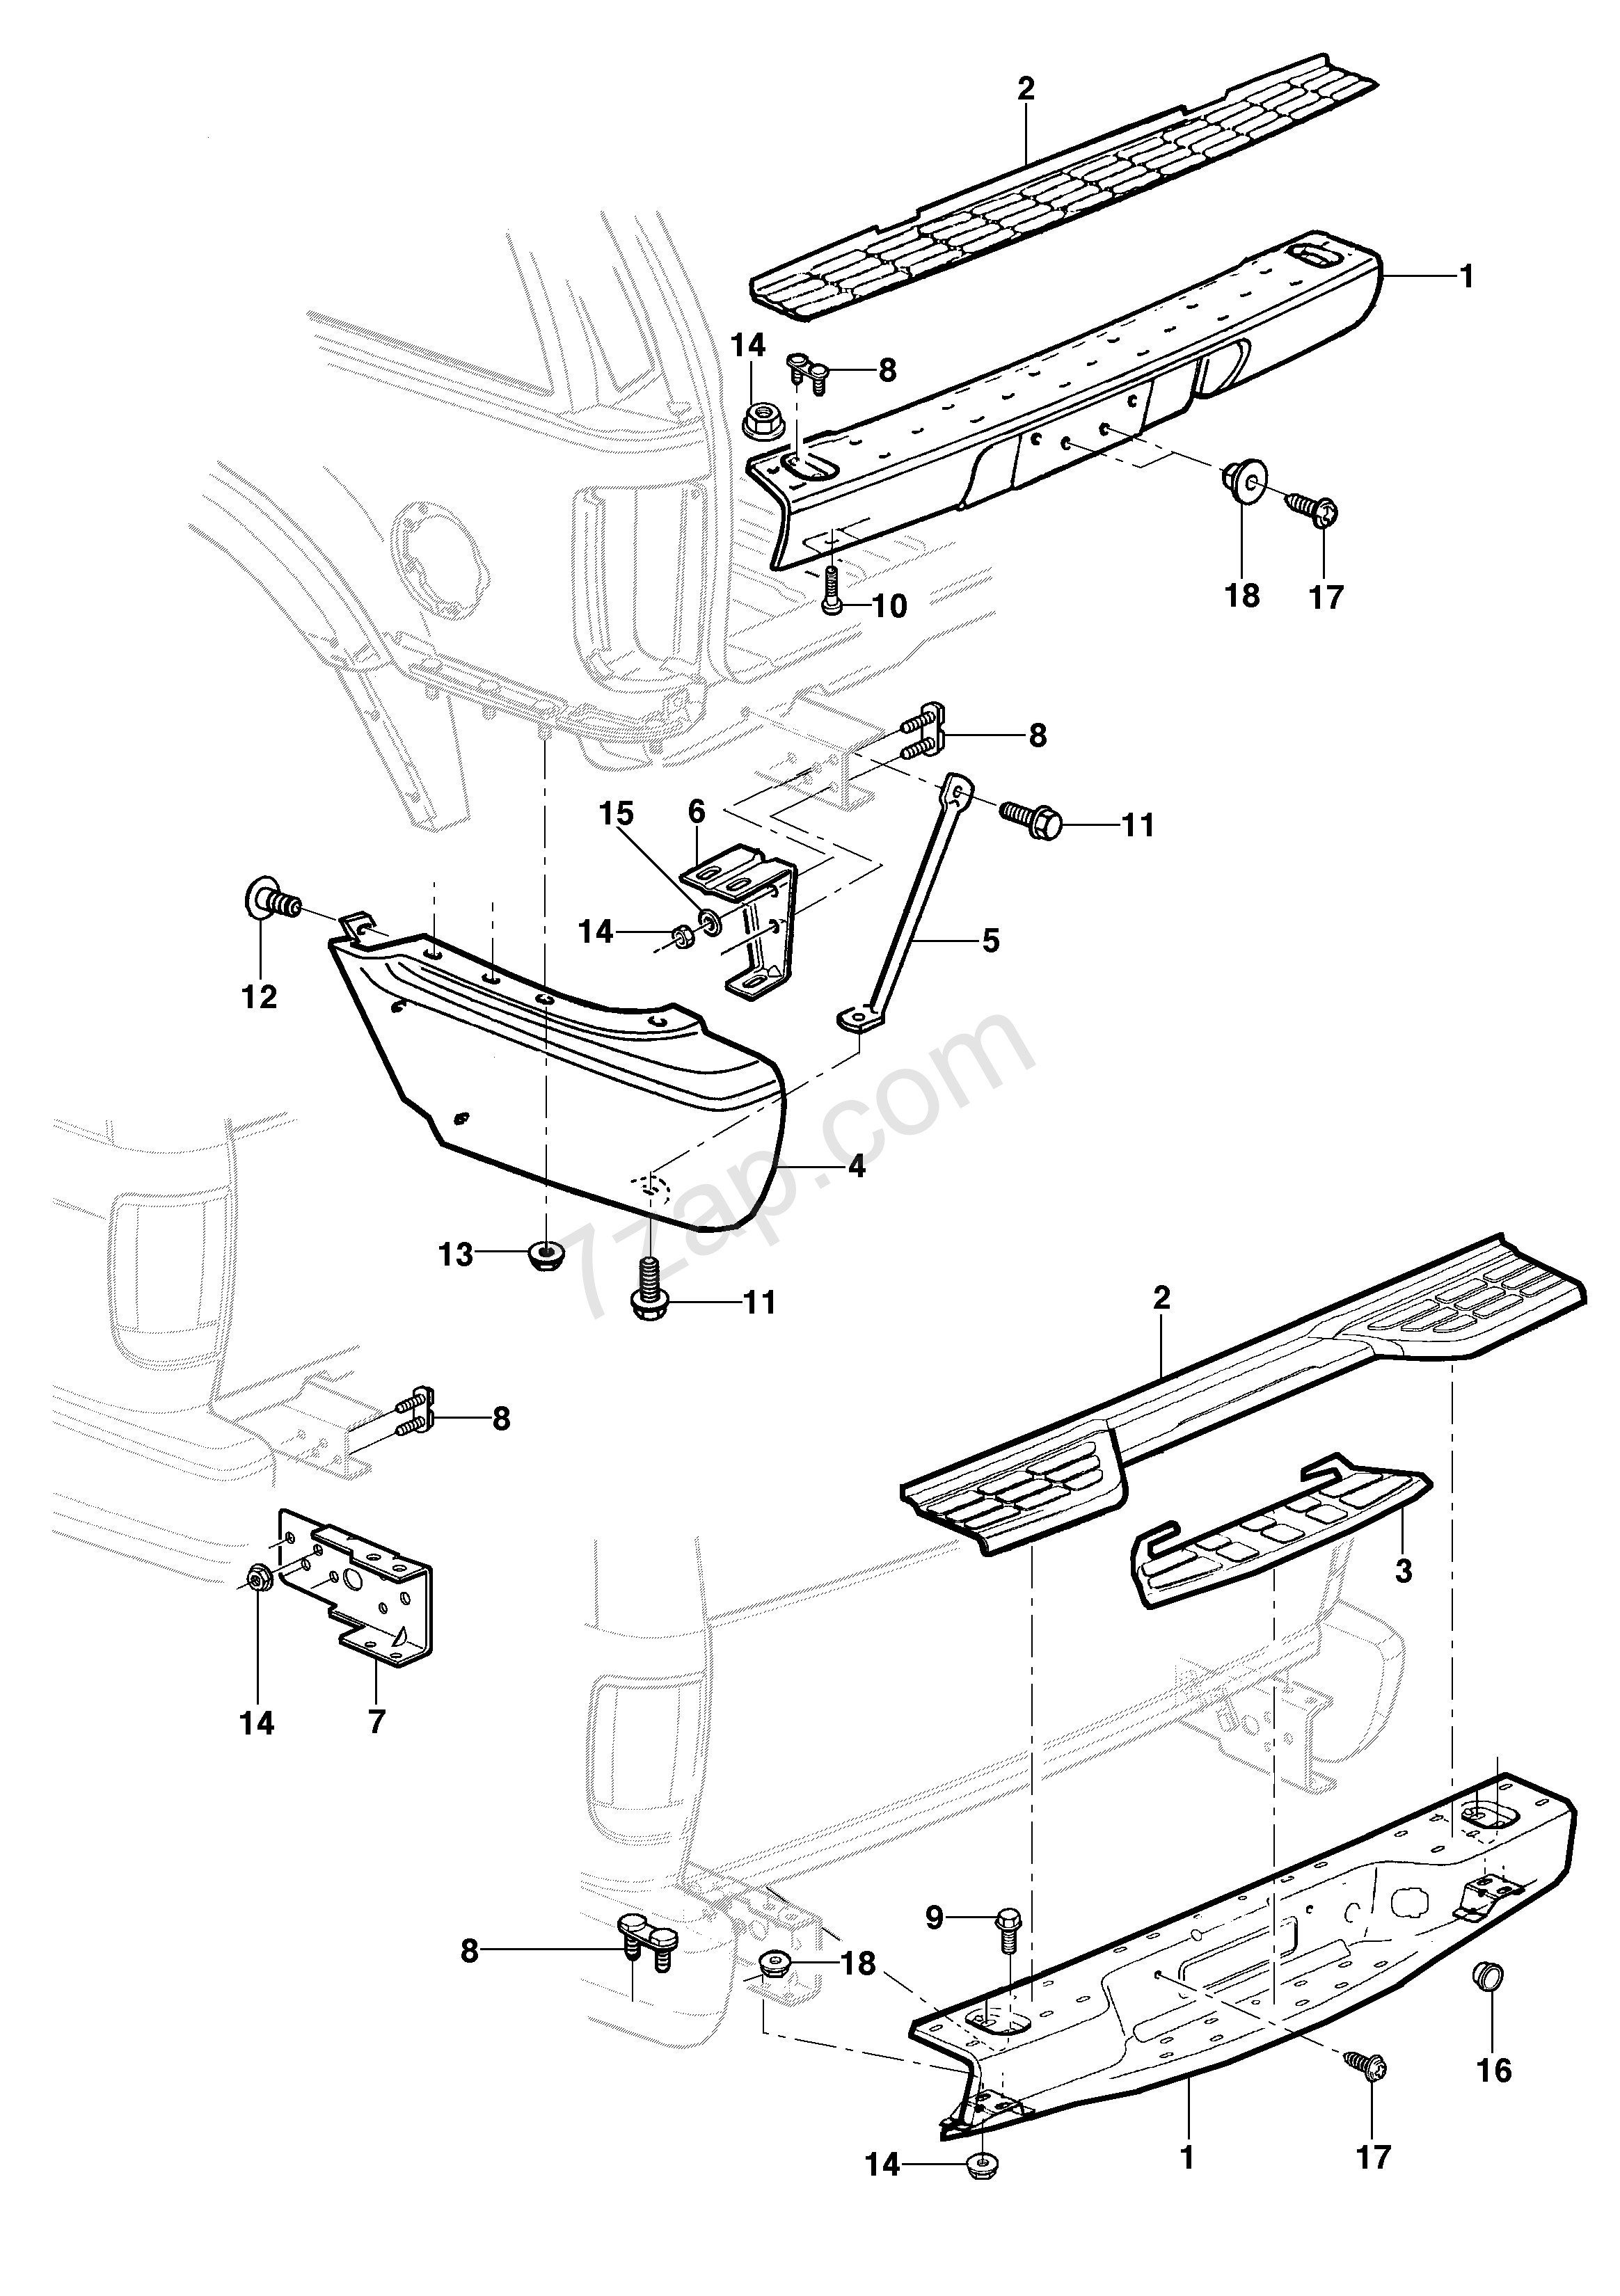 2008 Chevy Avalanche Tailgate Parts Diagram Wiring